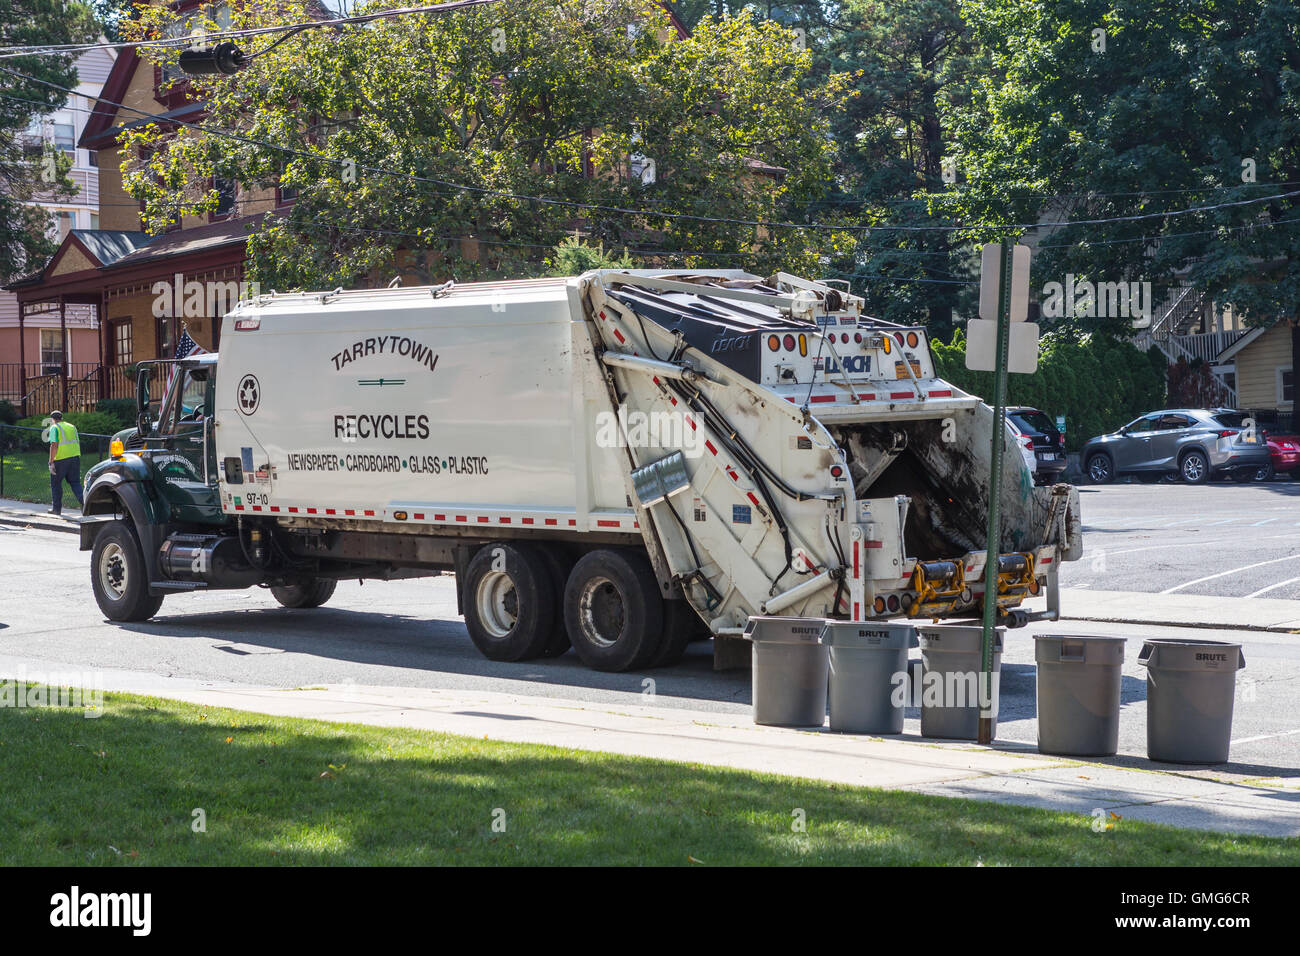 Sanitation workers collect recyclables using a rear-loading garbage truck on a street in Tarrytown, New York. - Stock Image